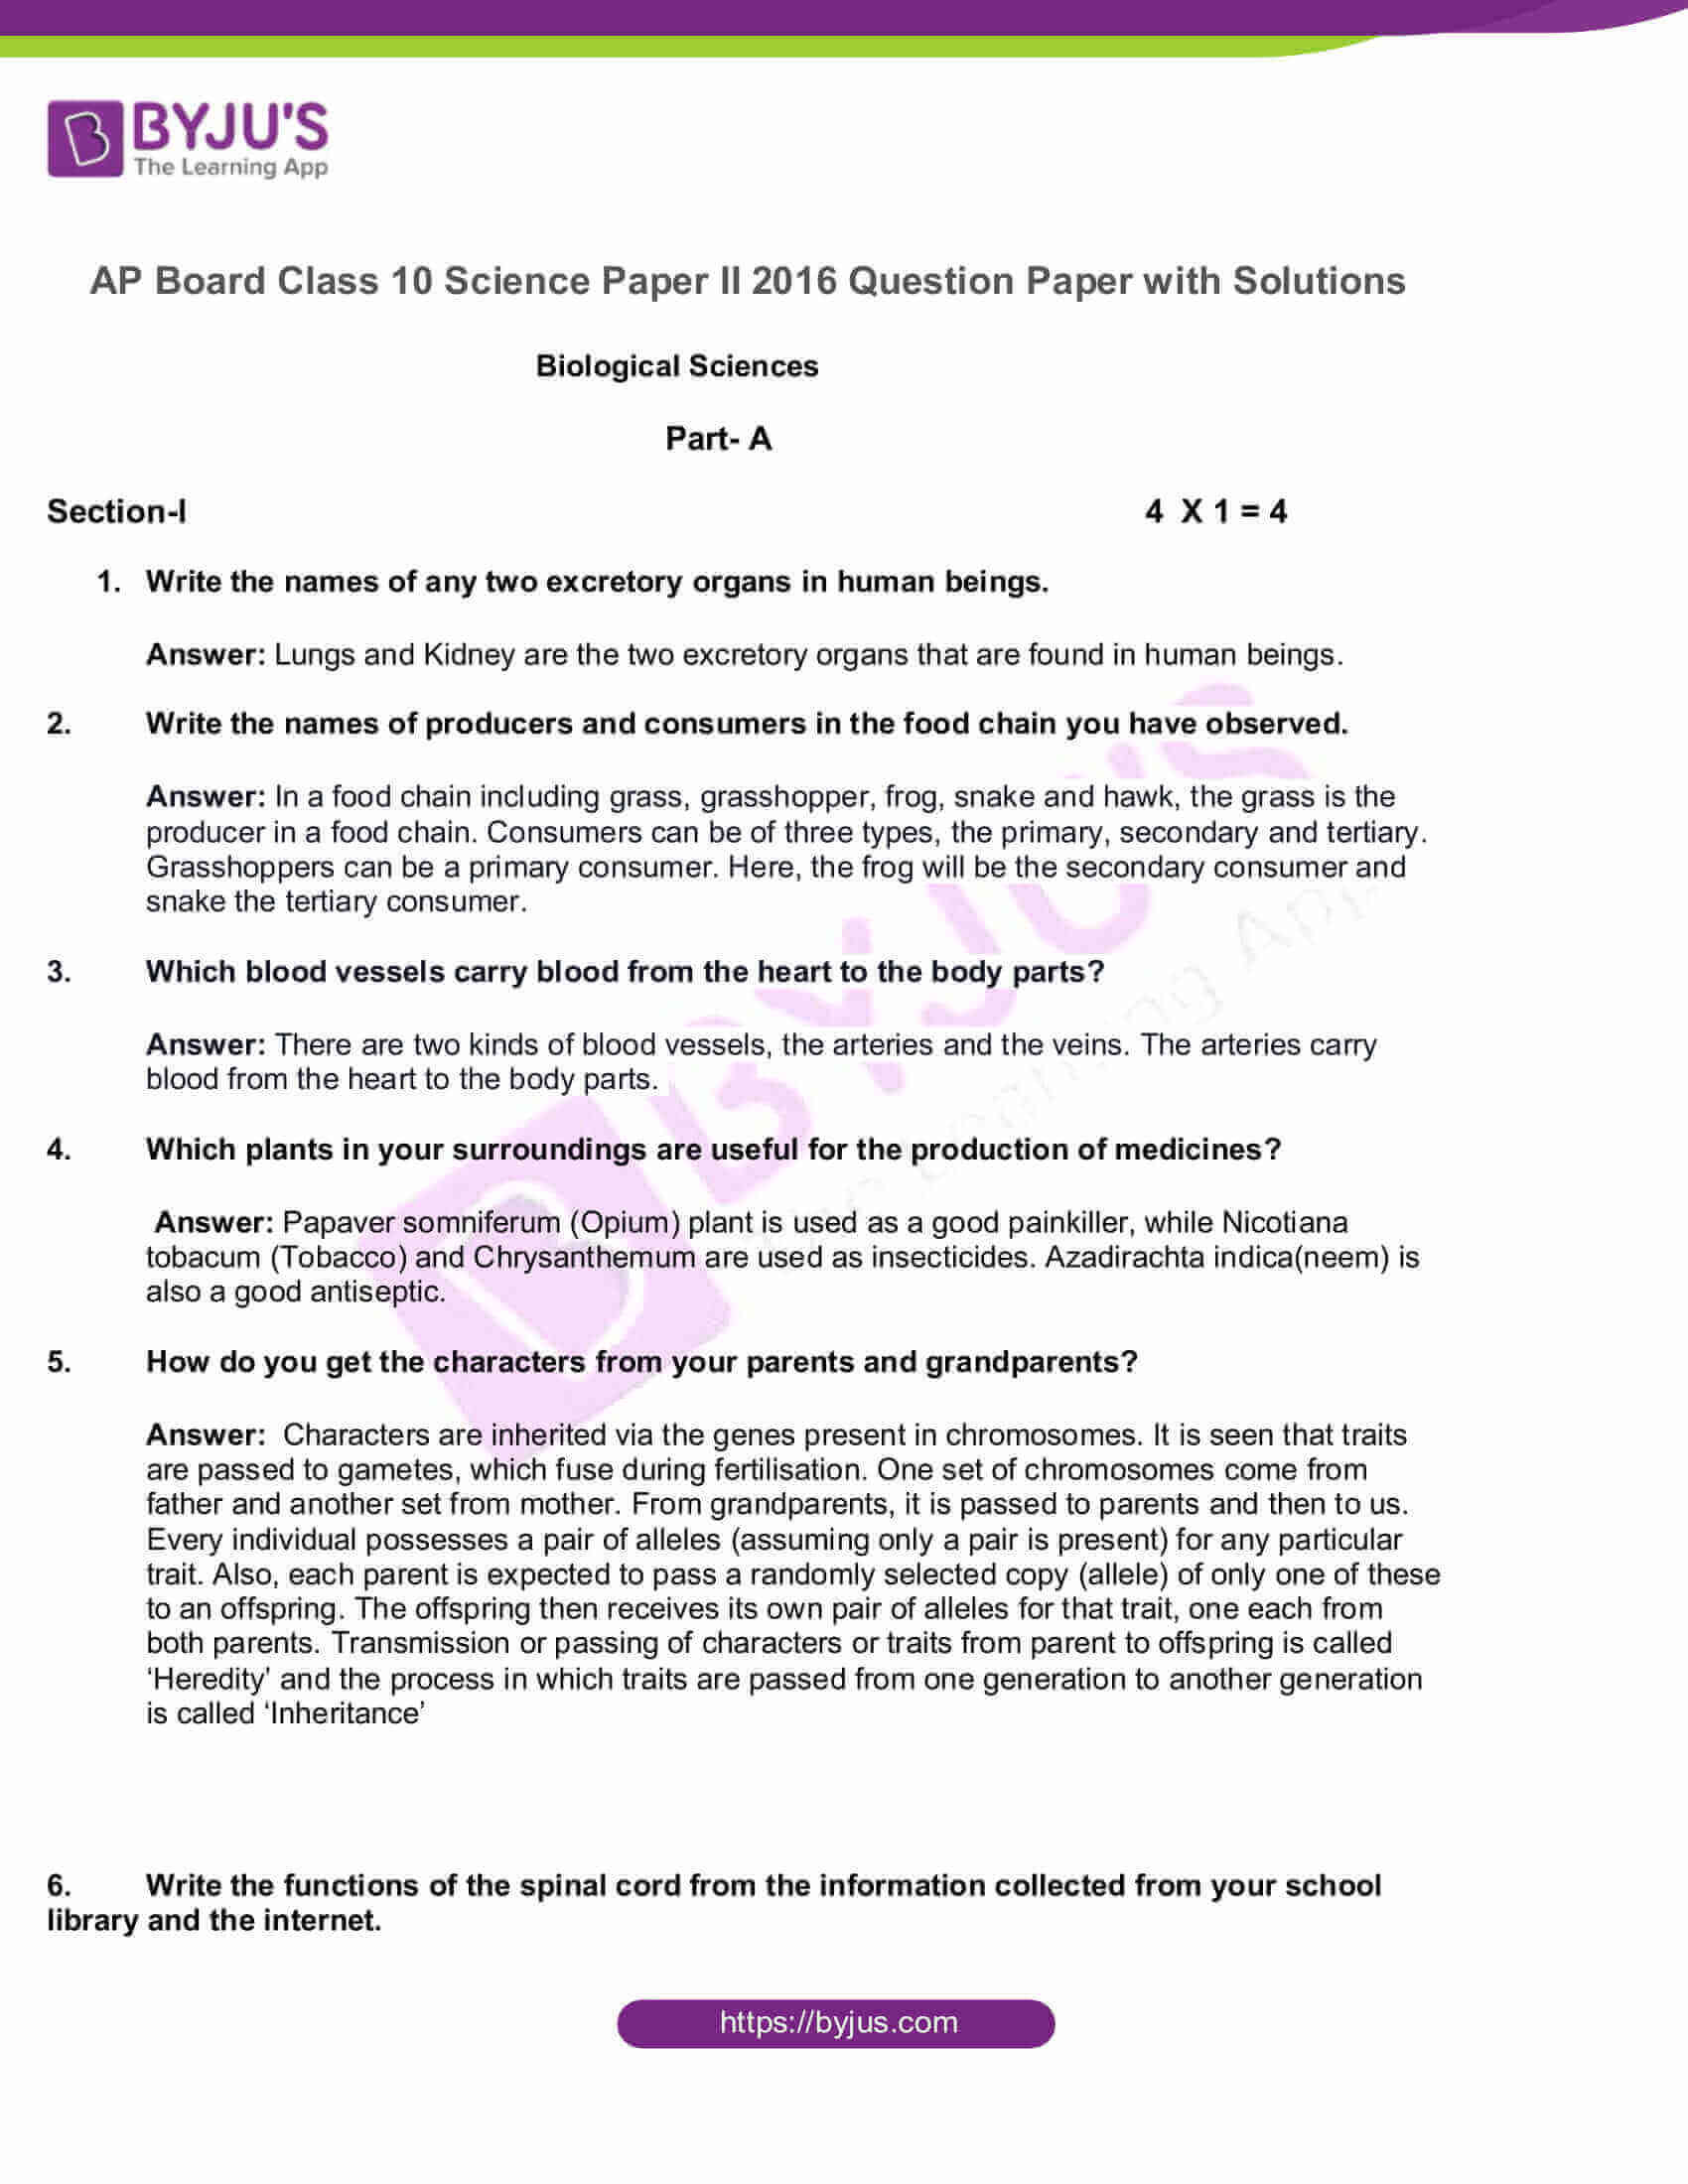 AP Board Class 10 Science Paper 2 2016 Question Paper with Solutions 1